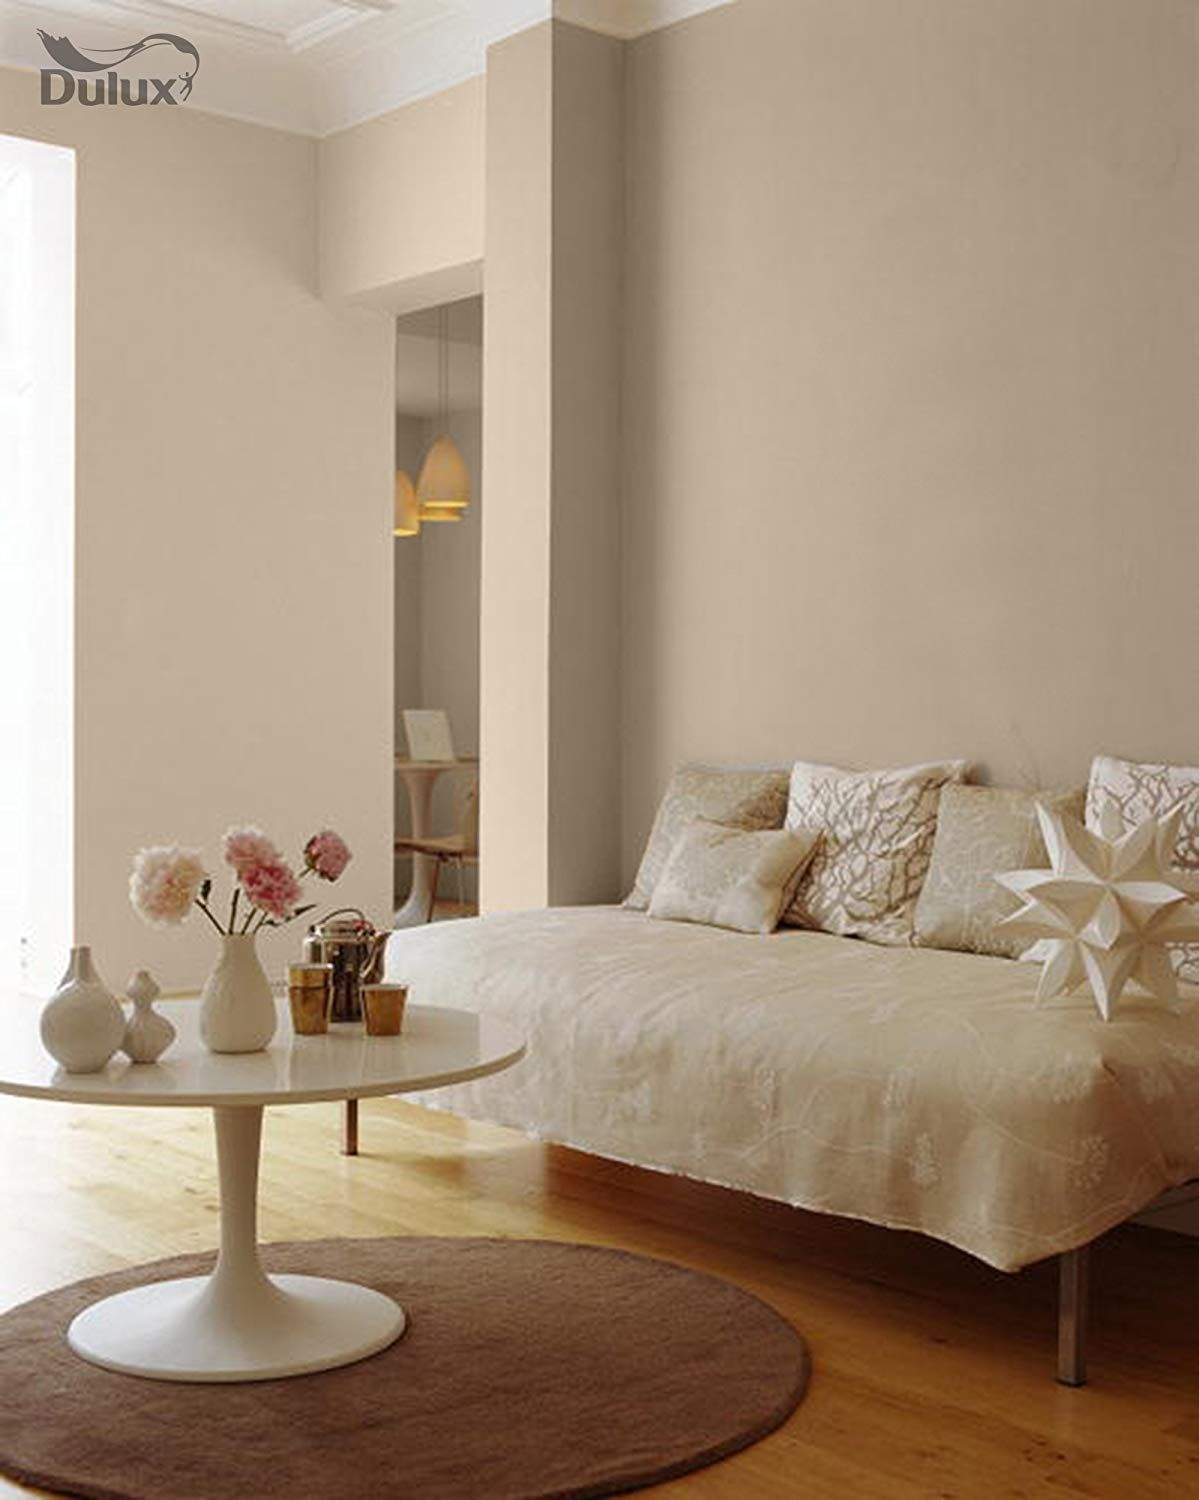 Best Image Result For Dulux Natural Hessian Hallway Colours 640 x 480